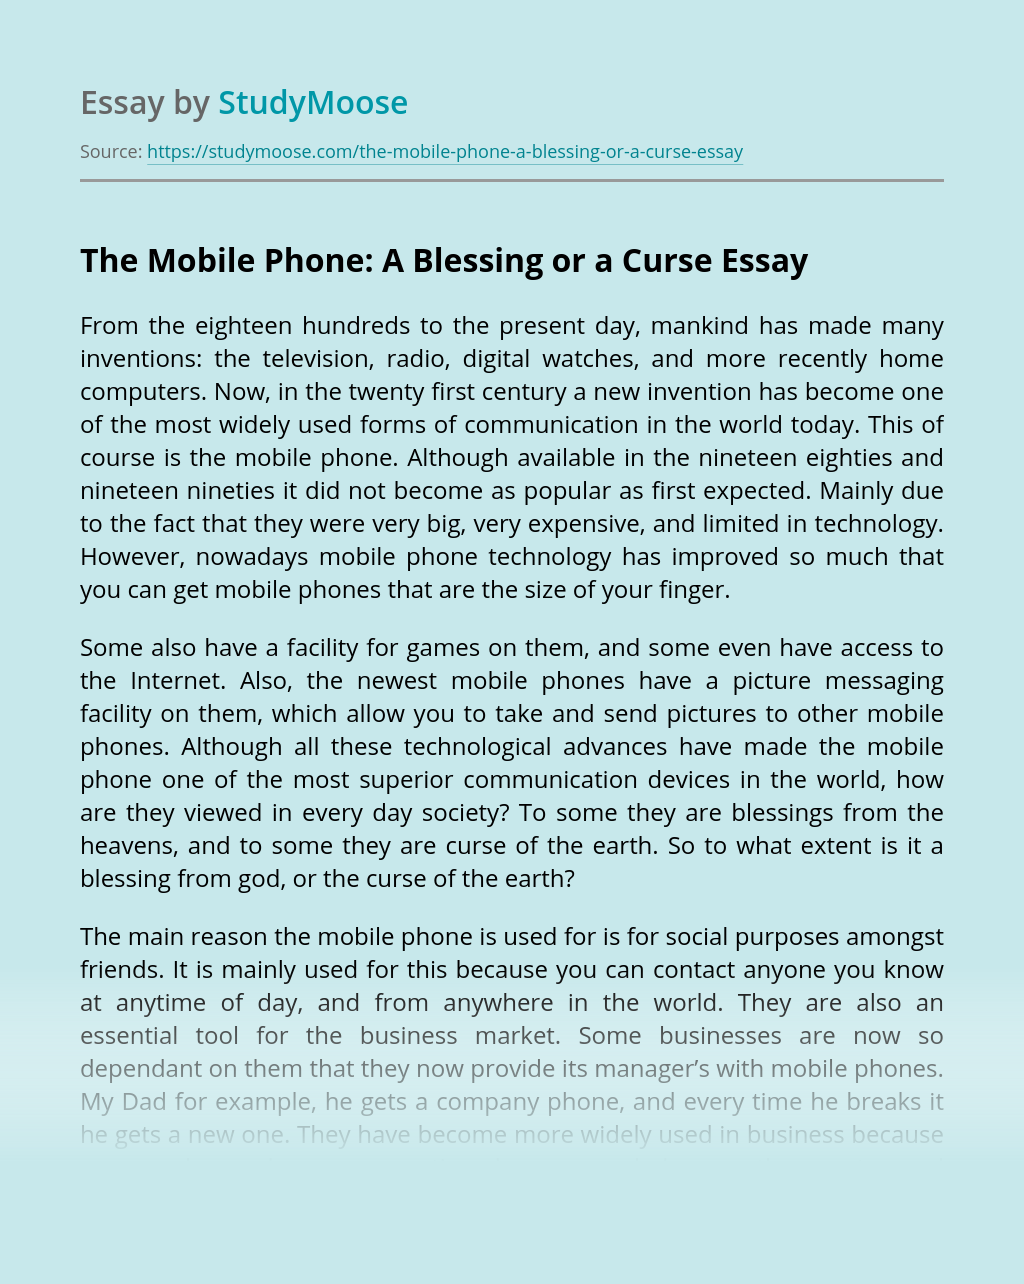 The Mobile Phone: A Blessing or a Curse